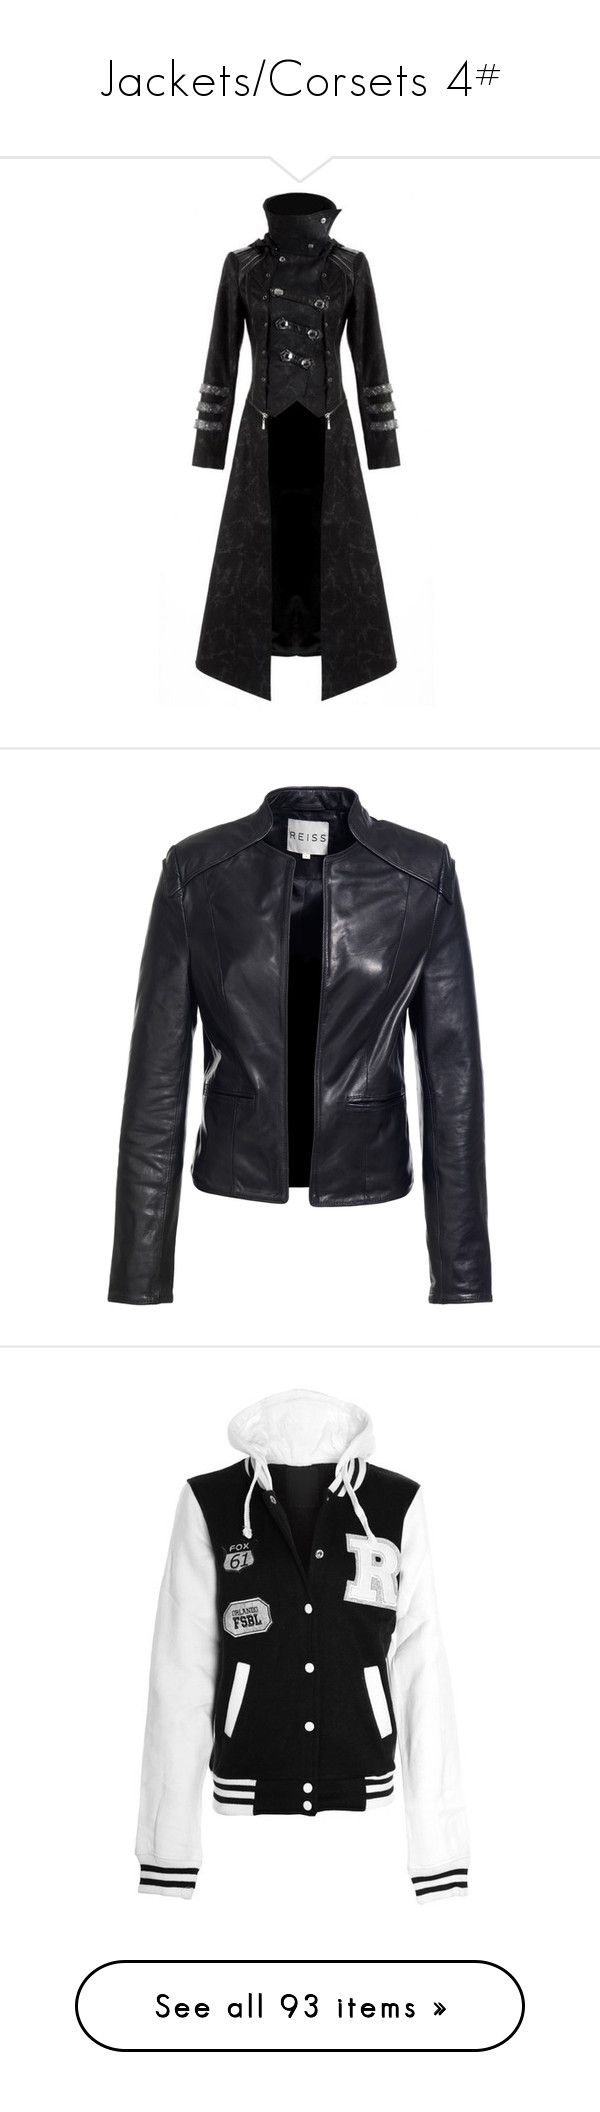 """""""Jackets/Corsets 4#"""" by randeemalloy ❤ liked on Polyvore featuring outerwear, coats, jackets, dresses, long jacket, long line jacket, goth coat, steampunk coat, longline jacket and leather jackets"""